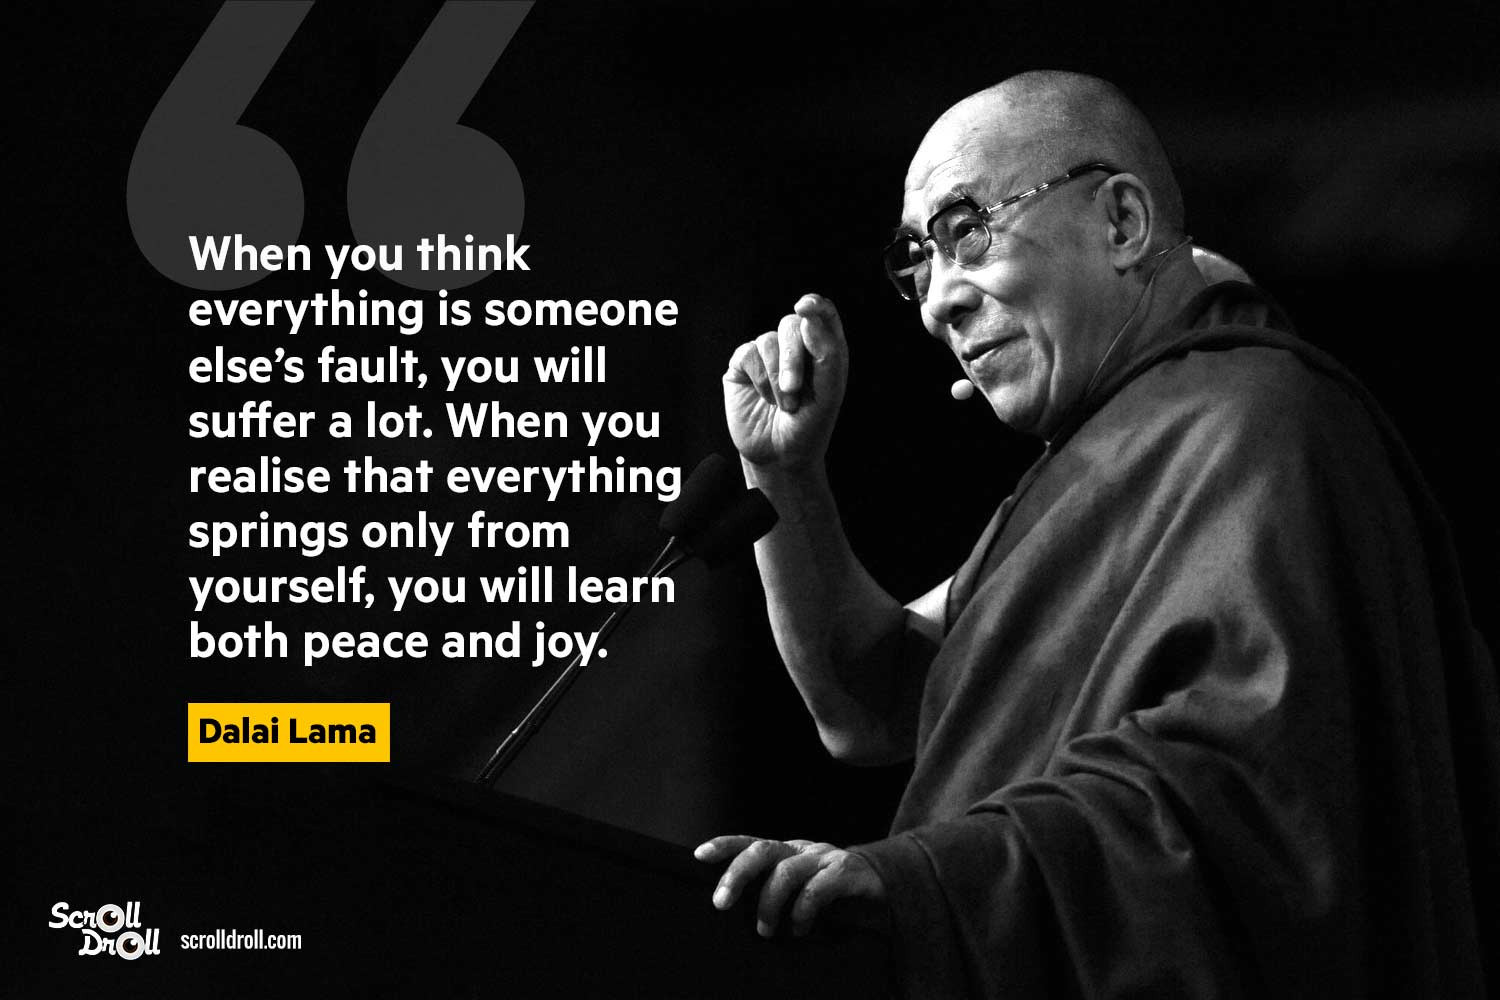 Kindness Quotes Dalai Lama  The Best Ideas for Kindness Quotes Dalai Lama Home